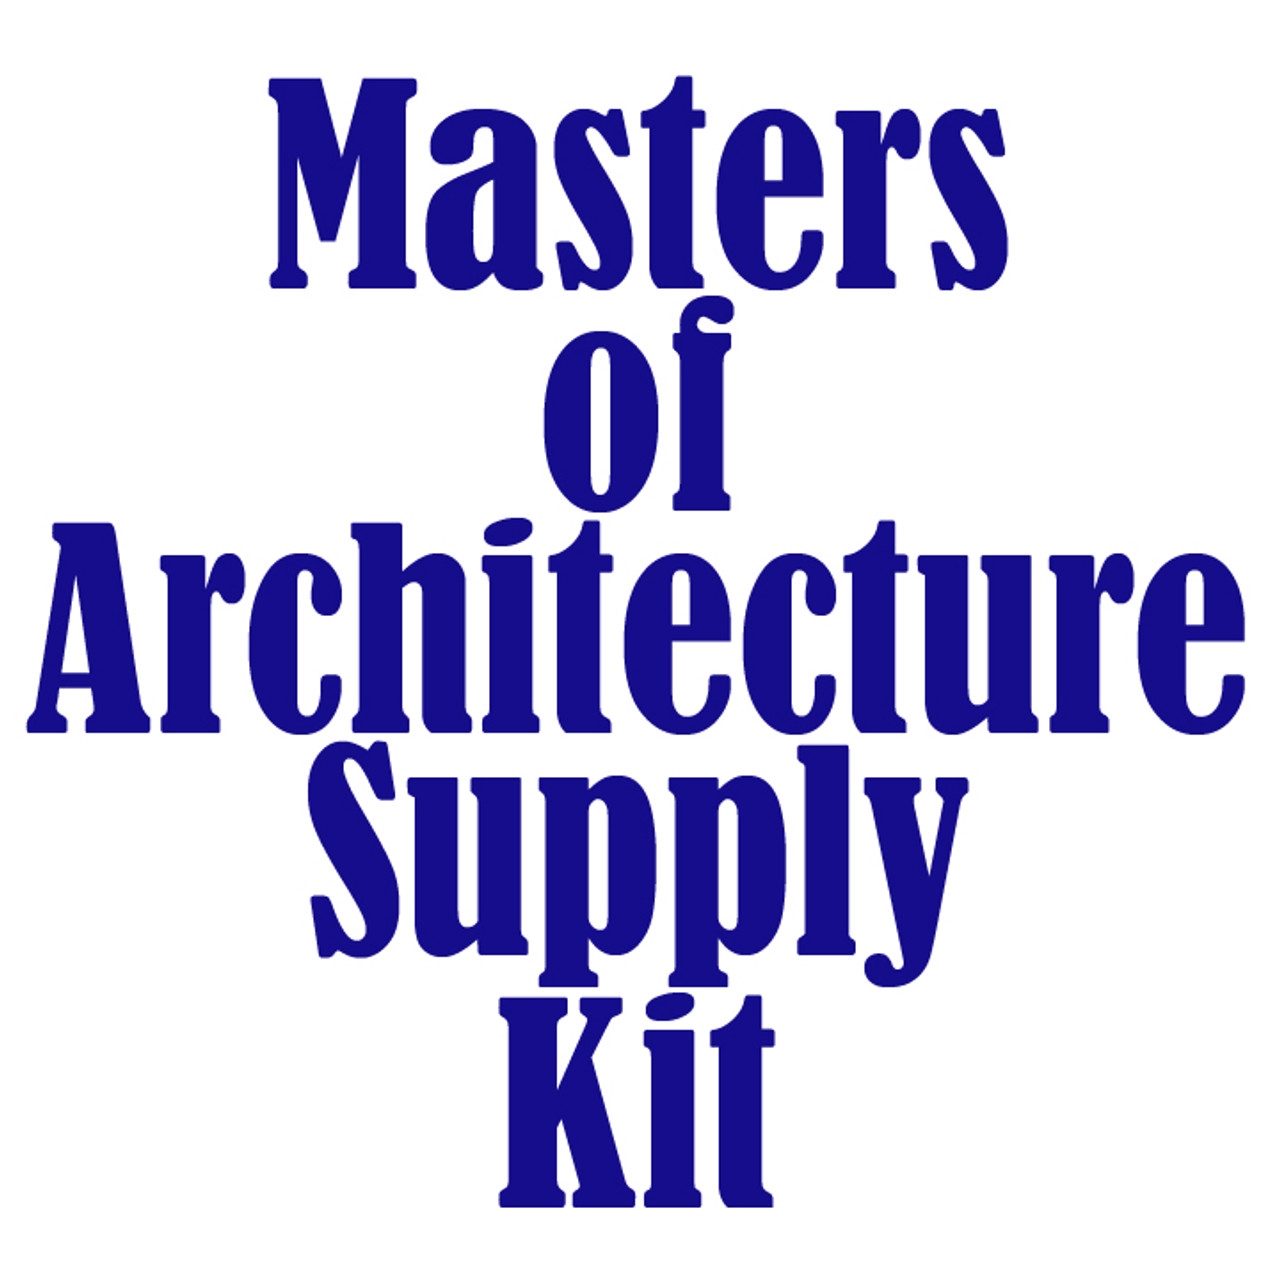 University of Colorado at Denver Masters of Architecture Supply Kit